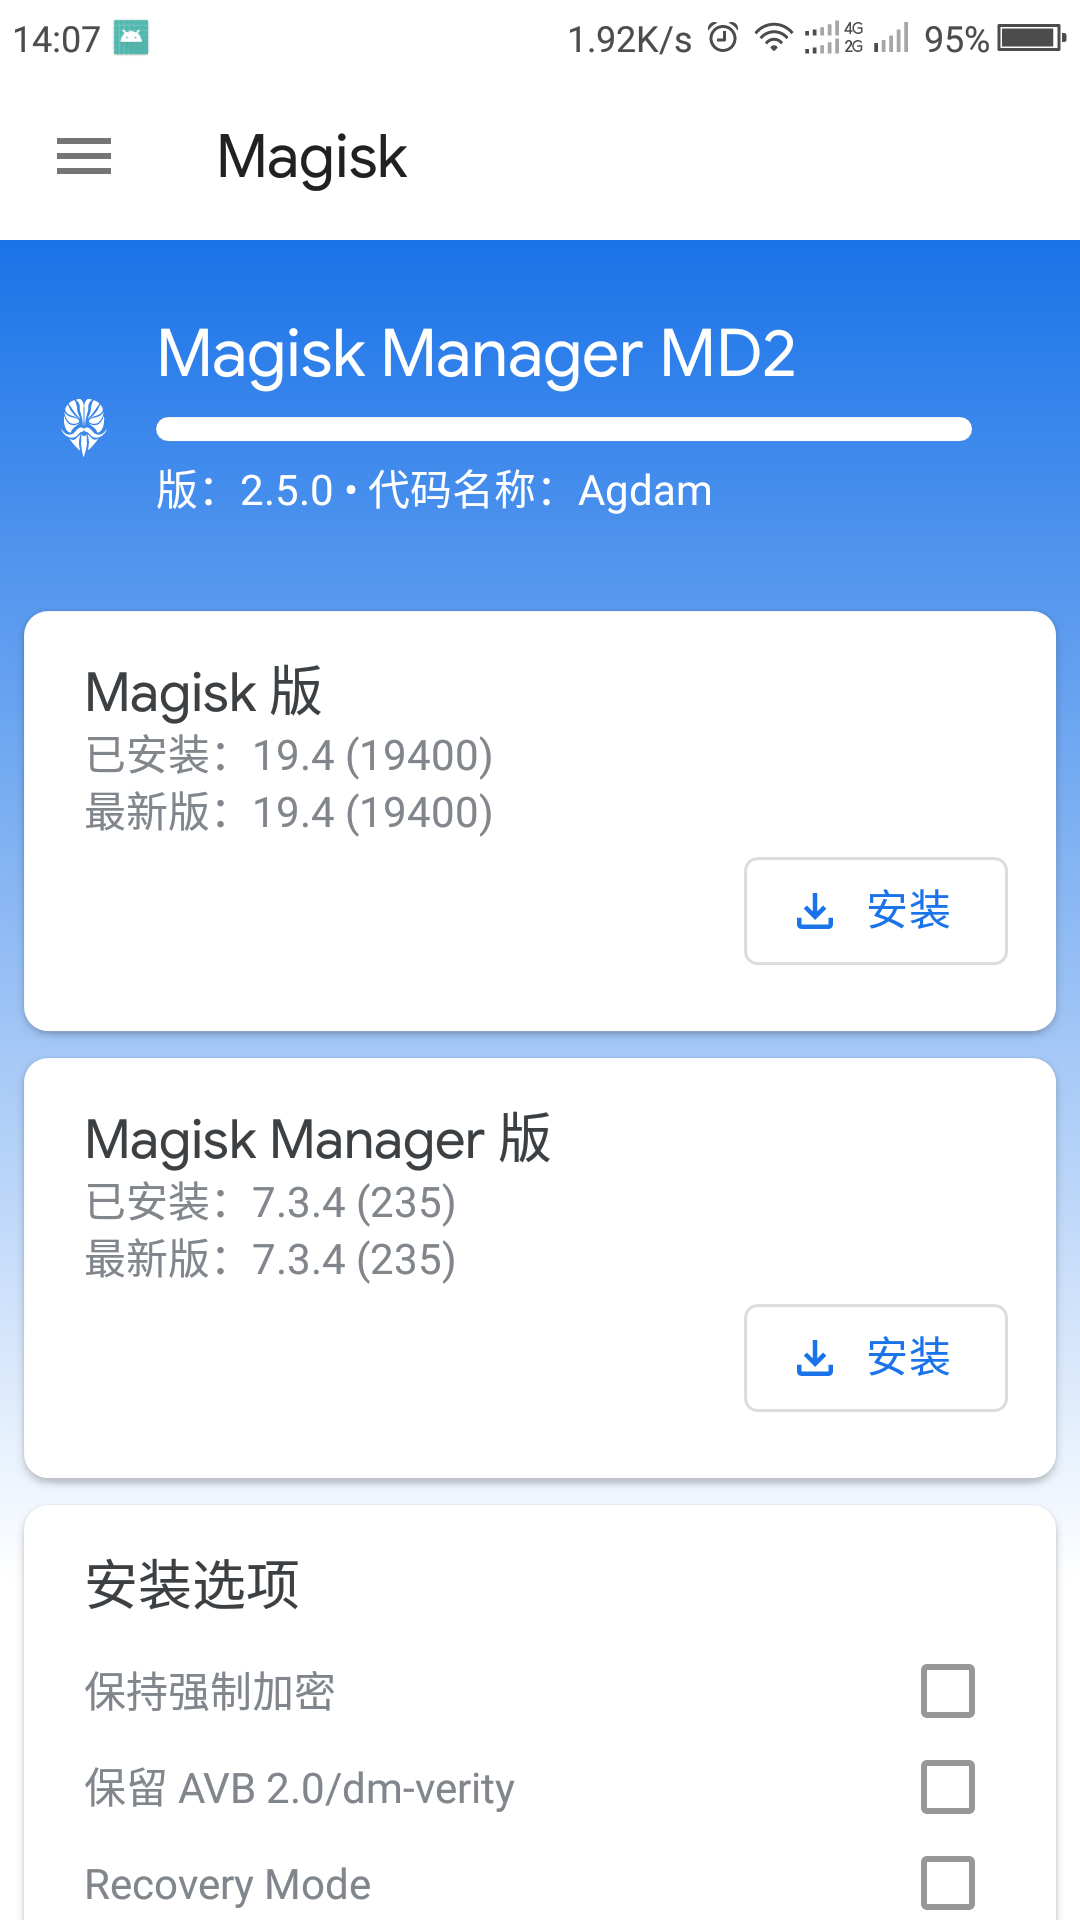 Screenshot_2019-10-03-14-07-26.png